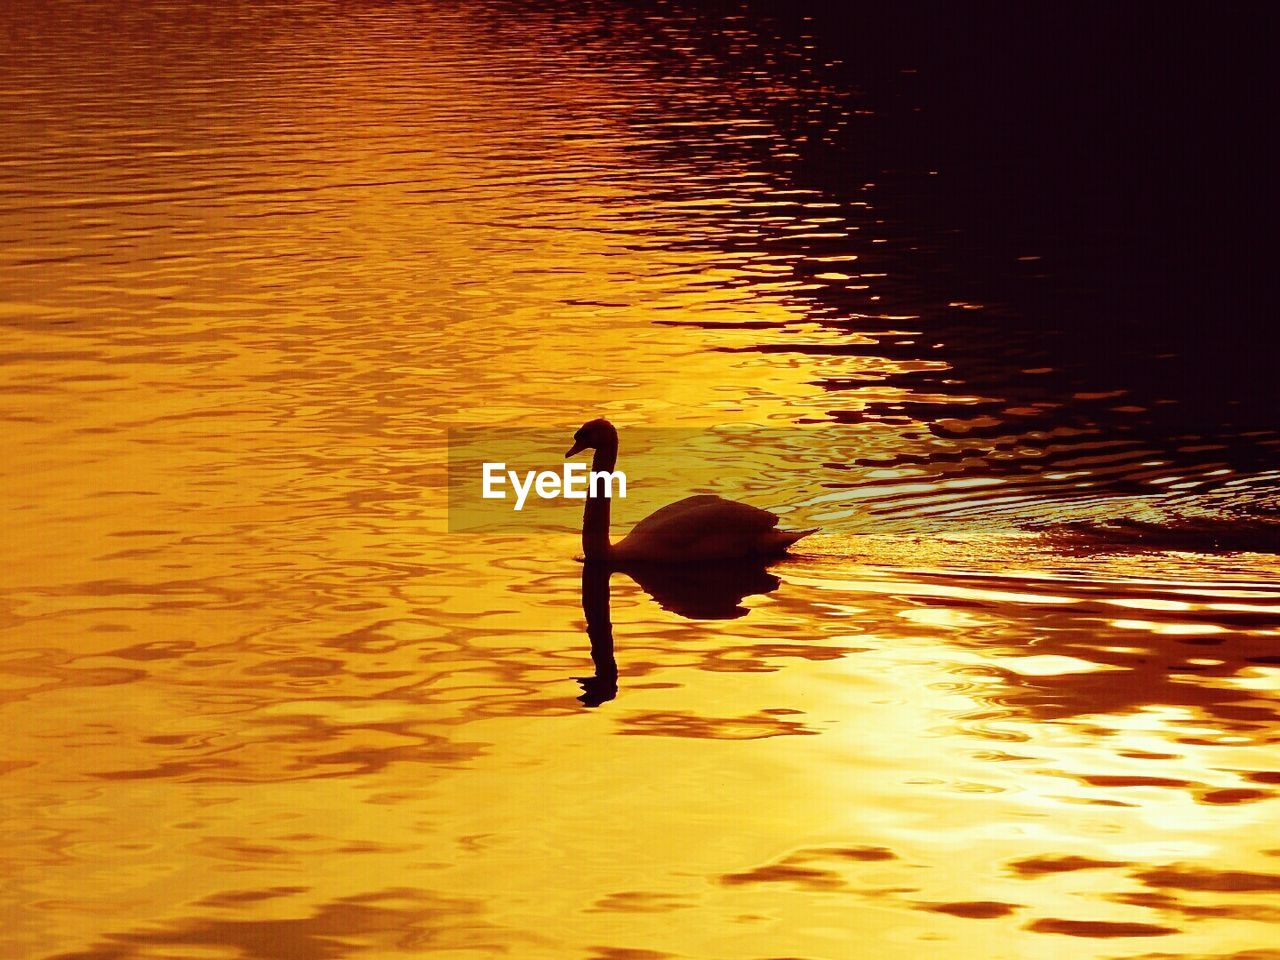 animals in the wild, animal themes, one animal, sunset, bird, water, nature, reflection, wildlife, animal wildlife, no people, waterfront, lake, silhouette, water bird, swimming, tranquility, beauty in nature, outdoors, swan, day